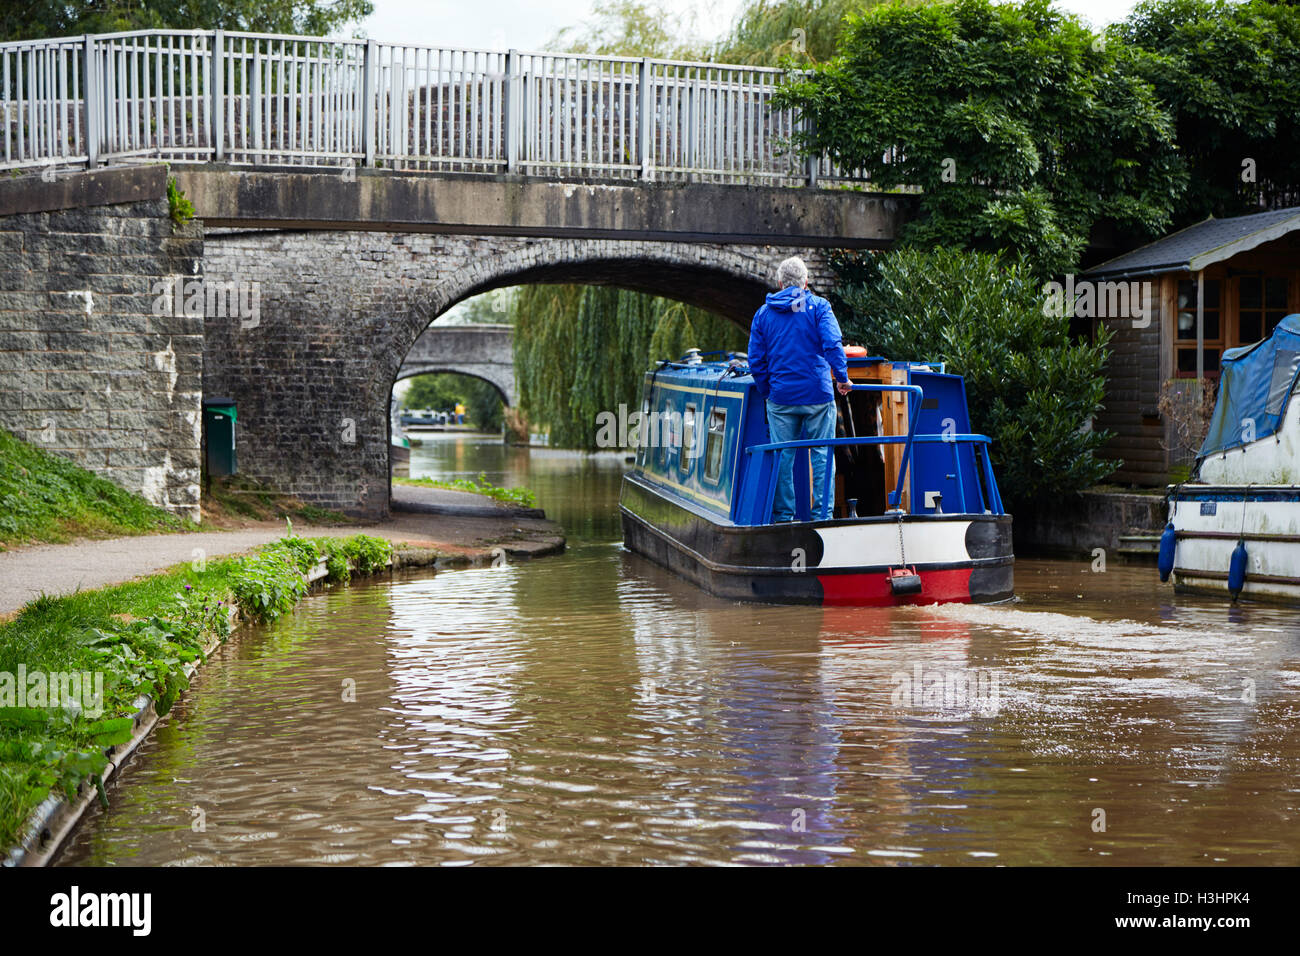 Canal boat going under bridges at Middlewich - Stock Image